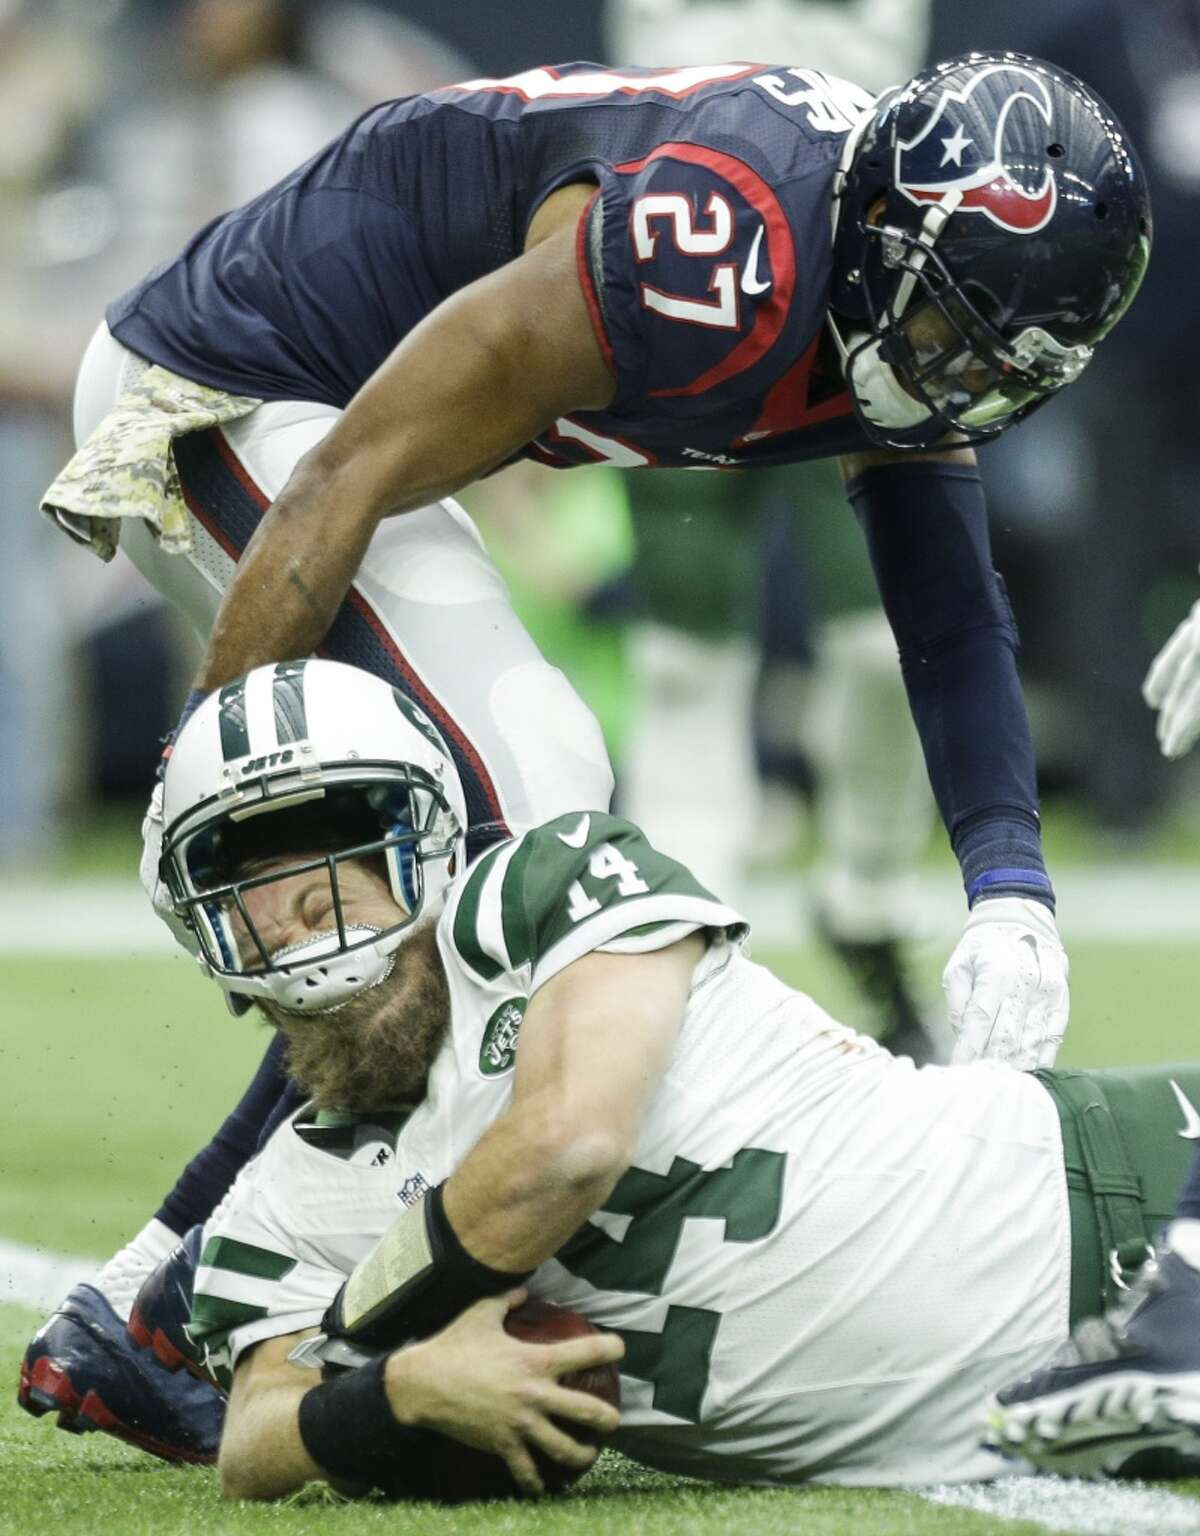 New York Jets quarterback Ryan Fitzpatrick (14) is hit by Houston Texans strong safety Quintin Demps (27) as he dives across the goal line for a 6-yard touchdown run during the fourth quarter of an NFL football game at NRG Stadium on Sunday, Nov. 22, 2015, in Houston. ( Brett Coomer / Houston Chronicle )